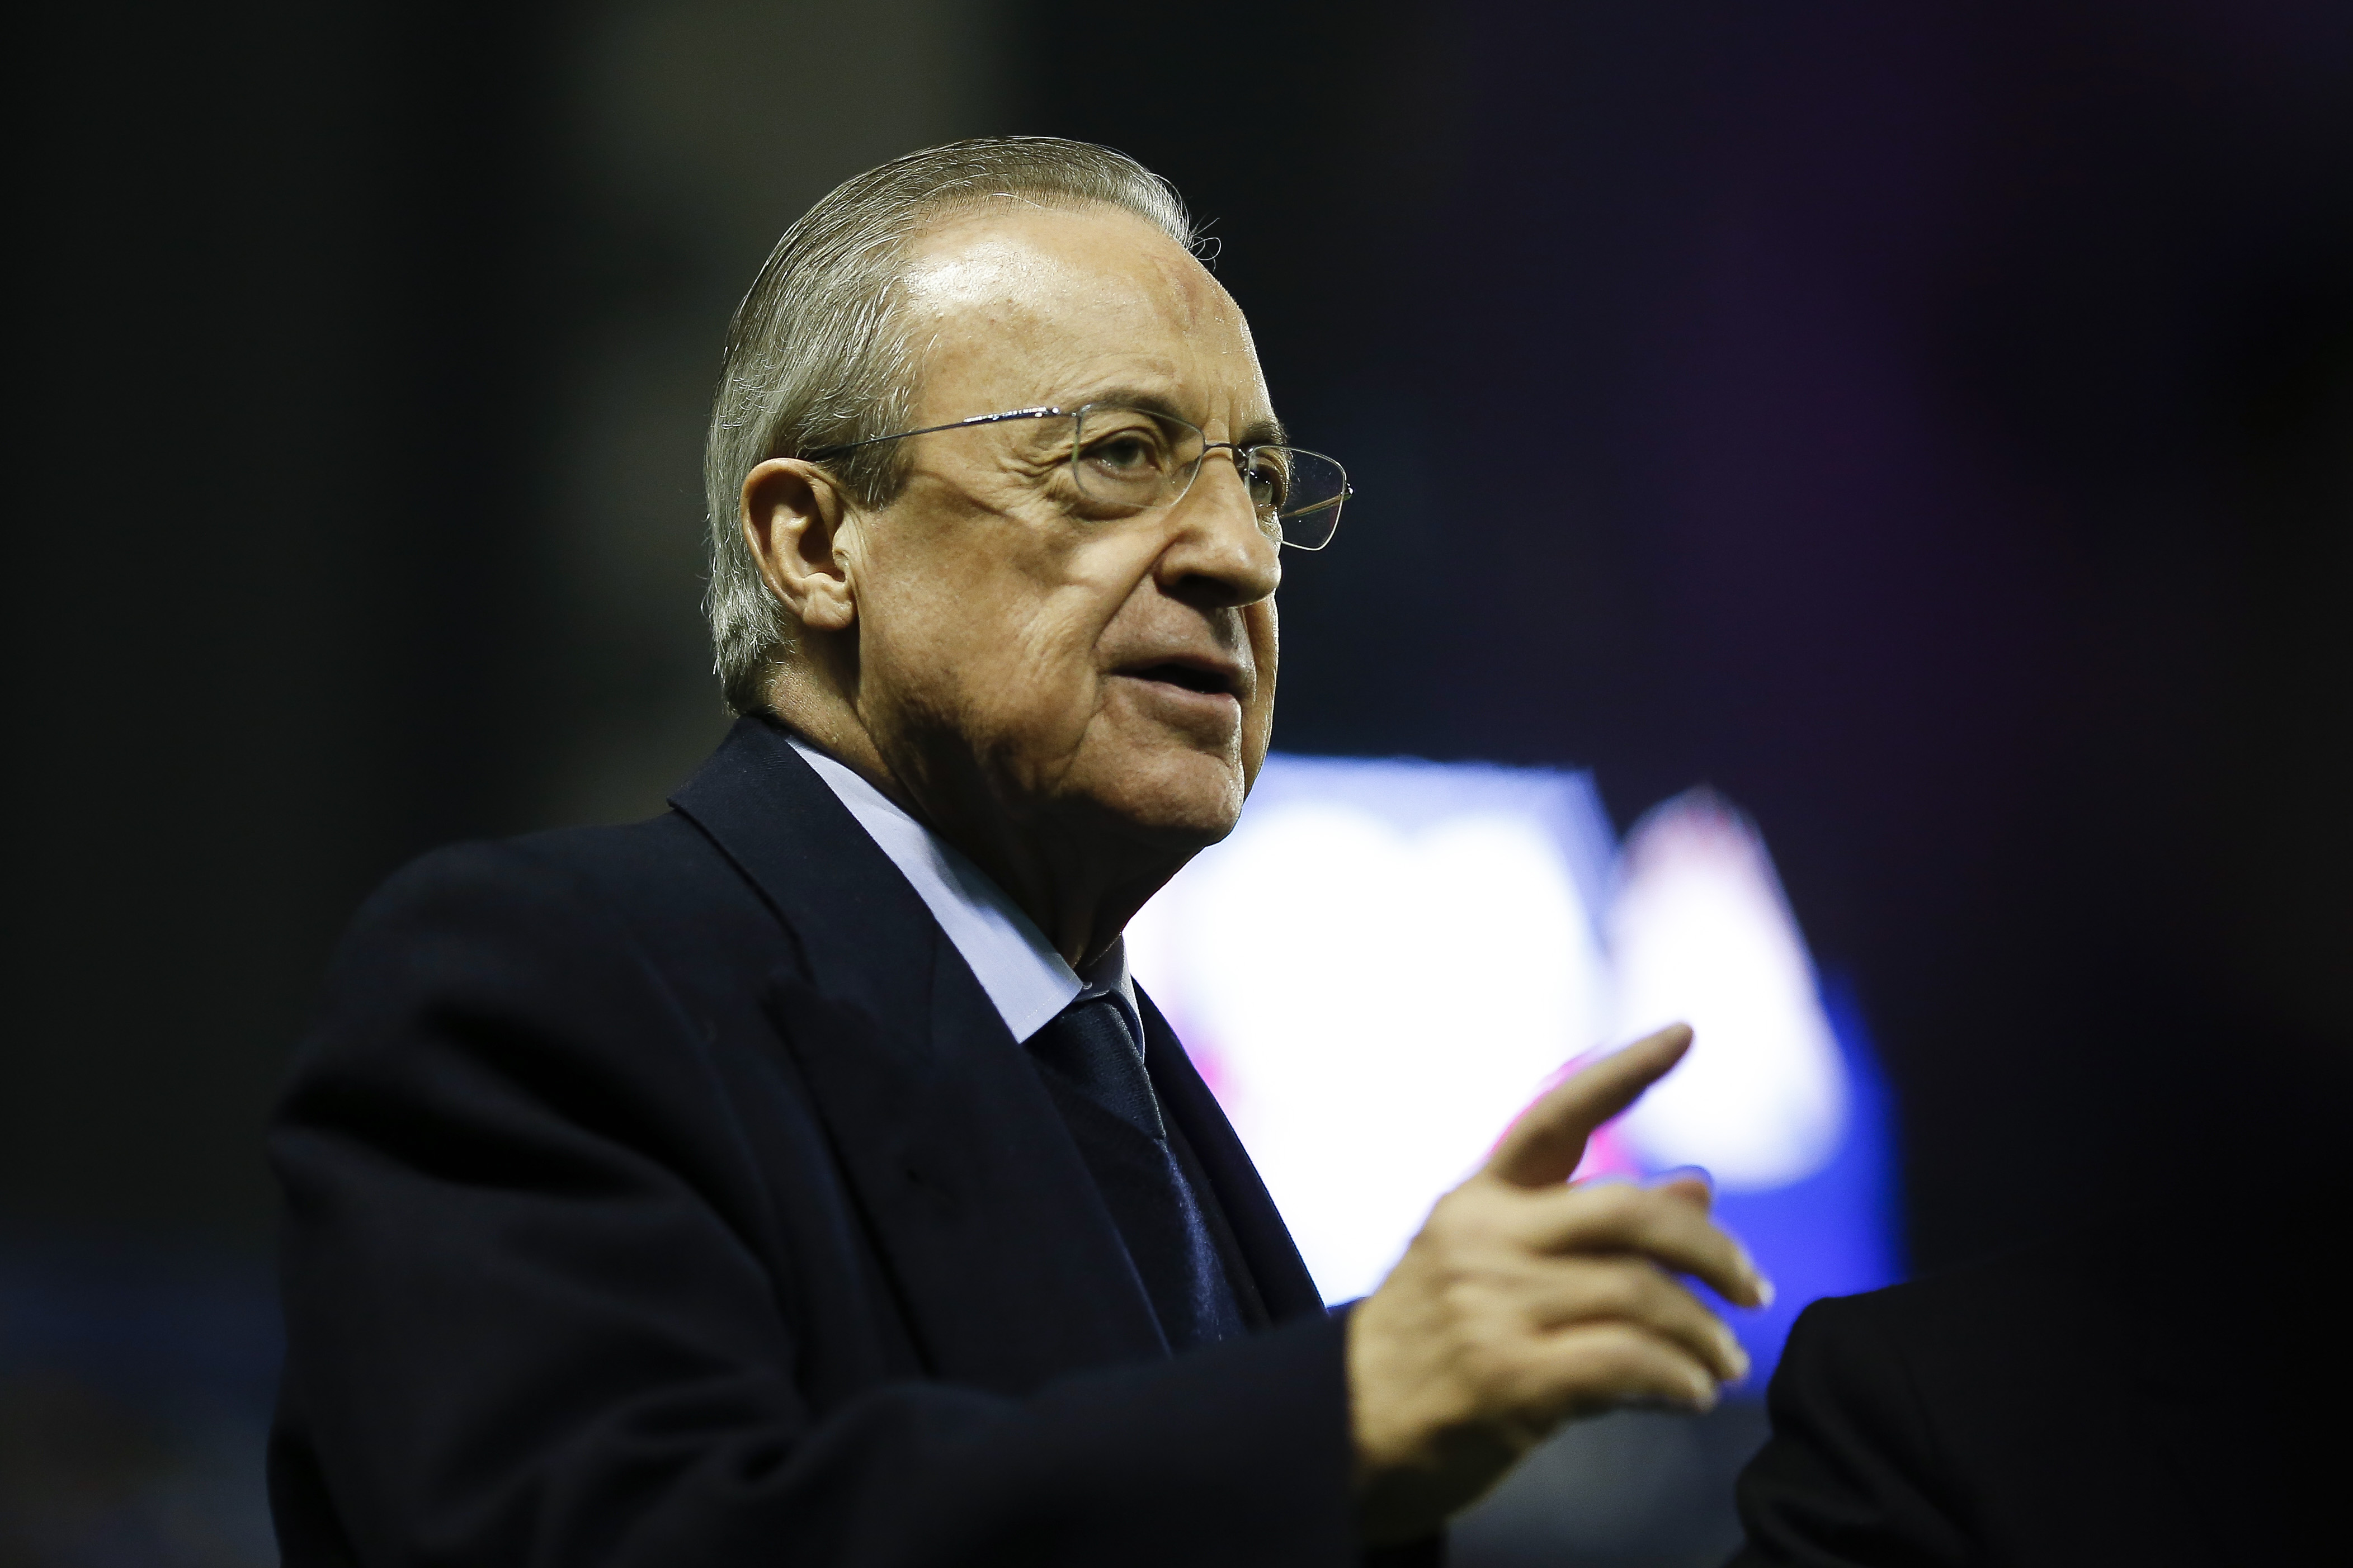 Real Madrid president Florentino Perez insists Super League isn't canceled, only on 'standby'